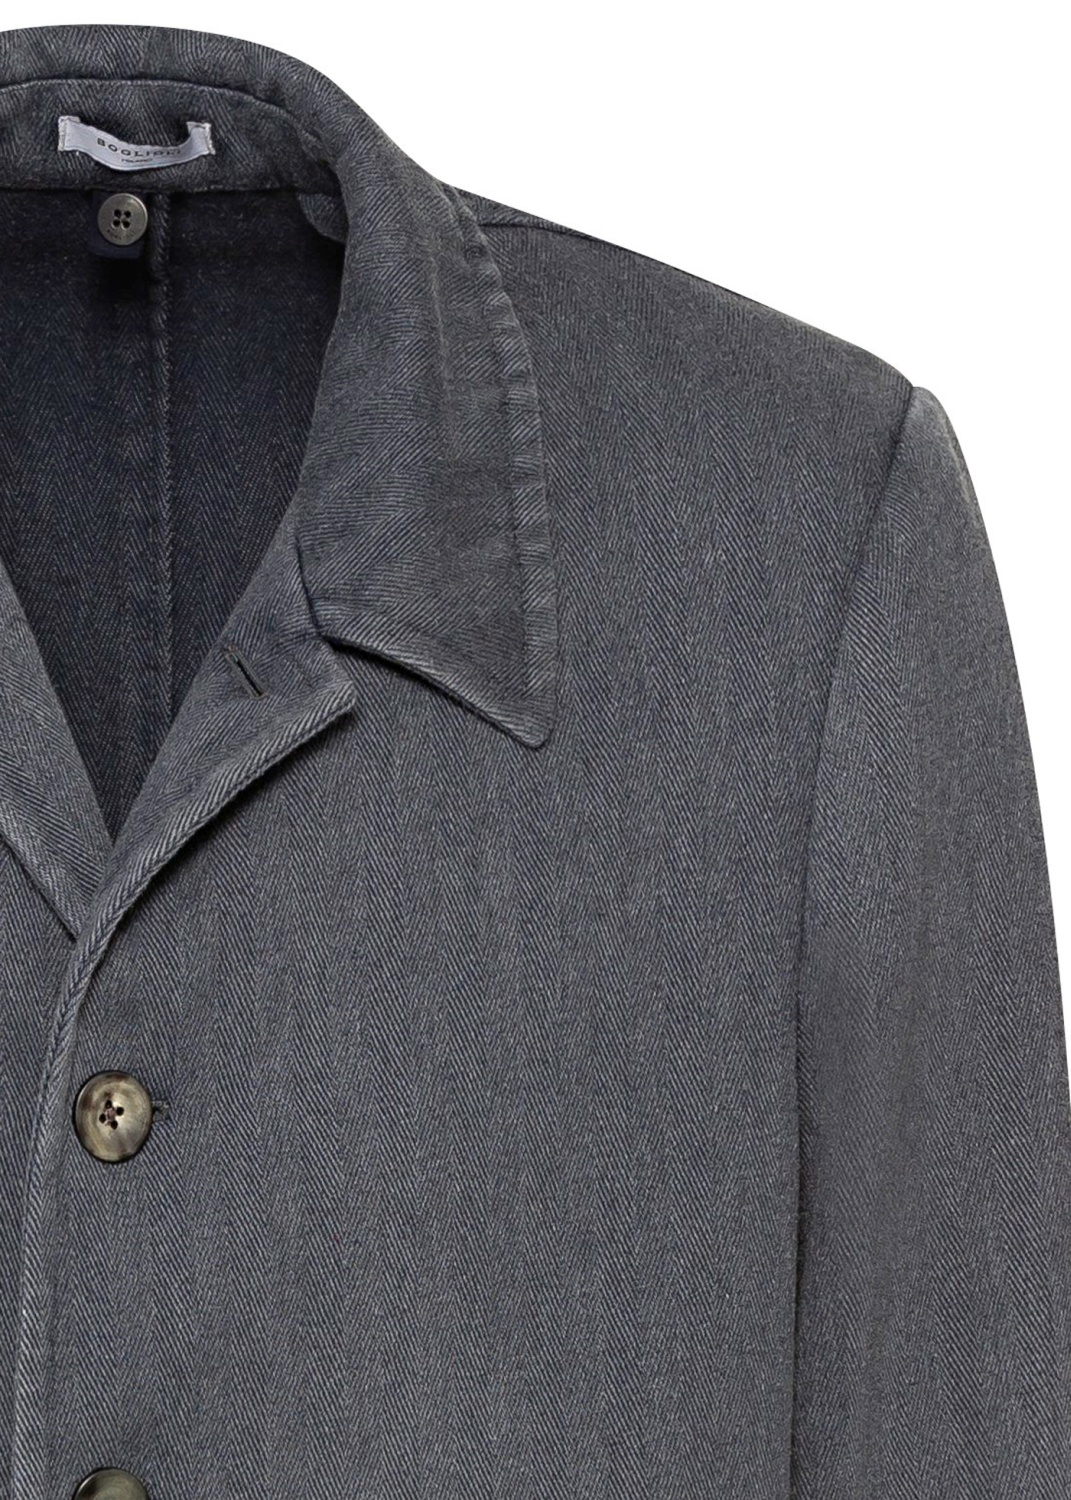 OUTERWEAR JACKET image number 2